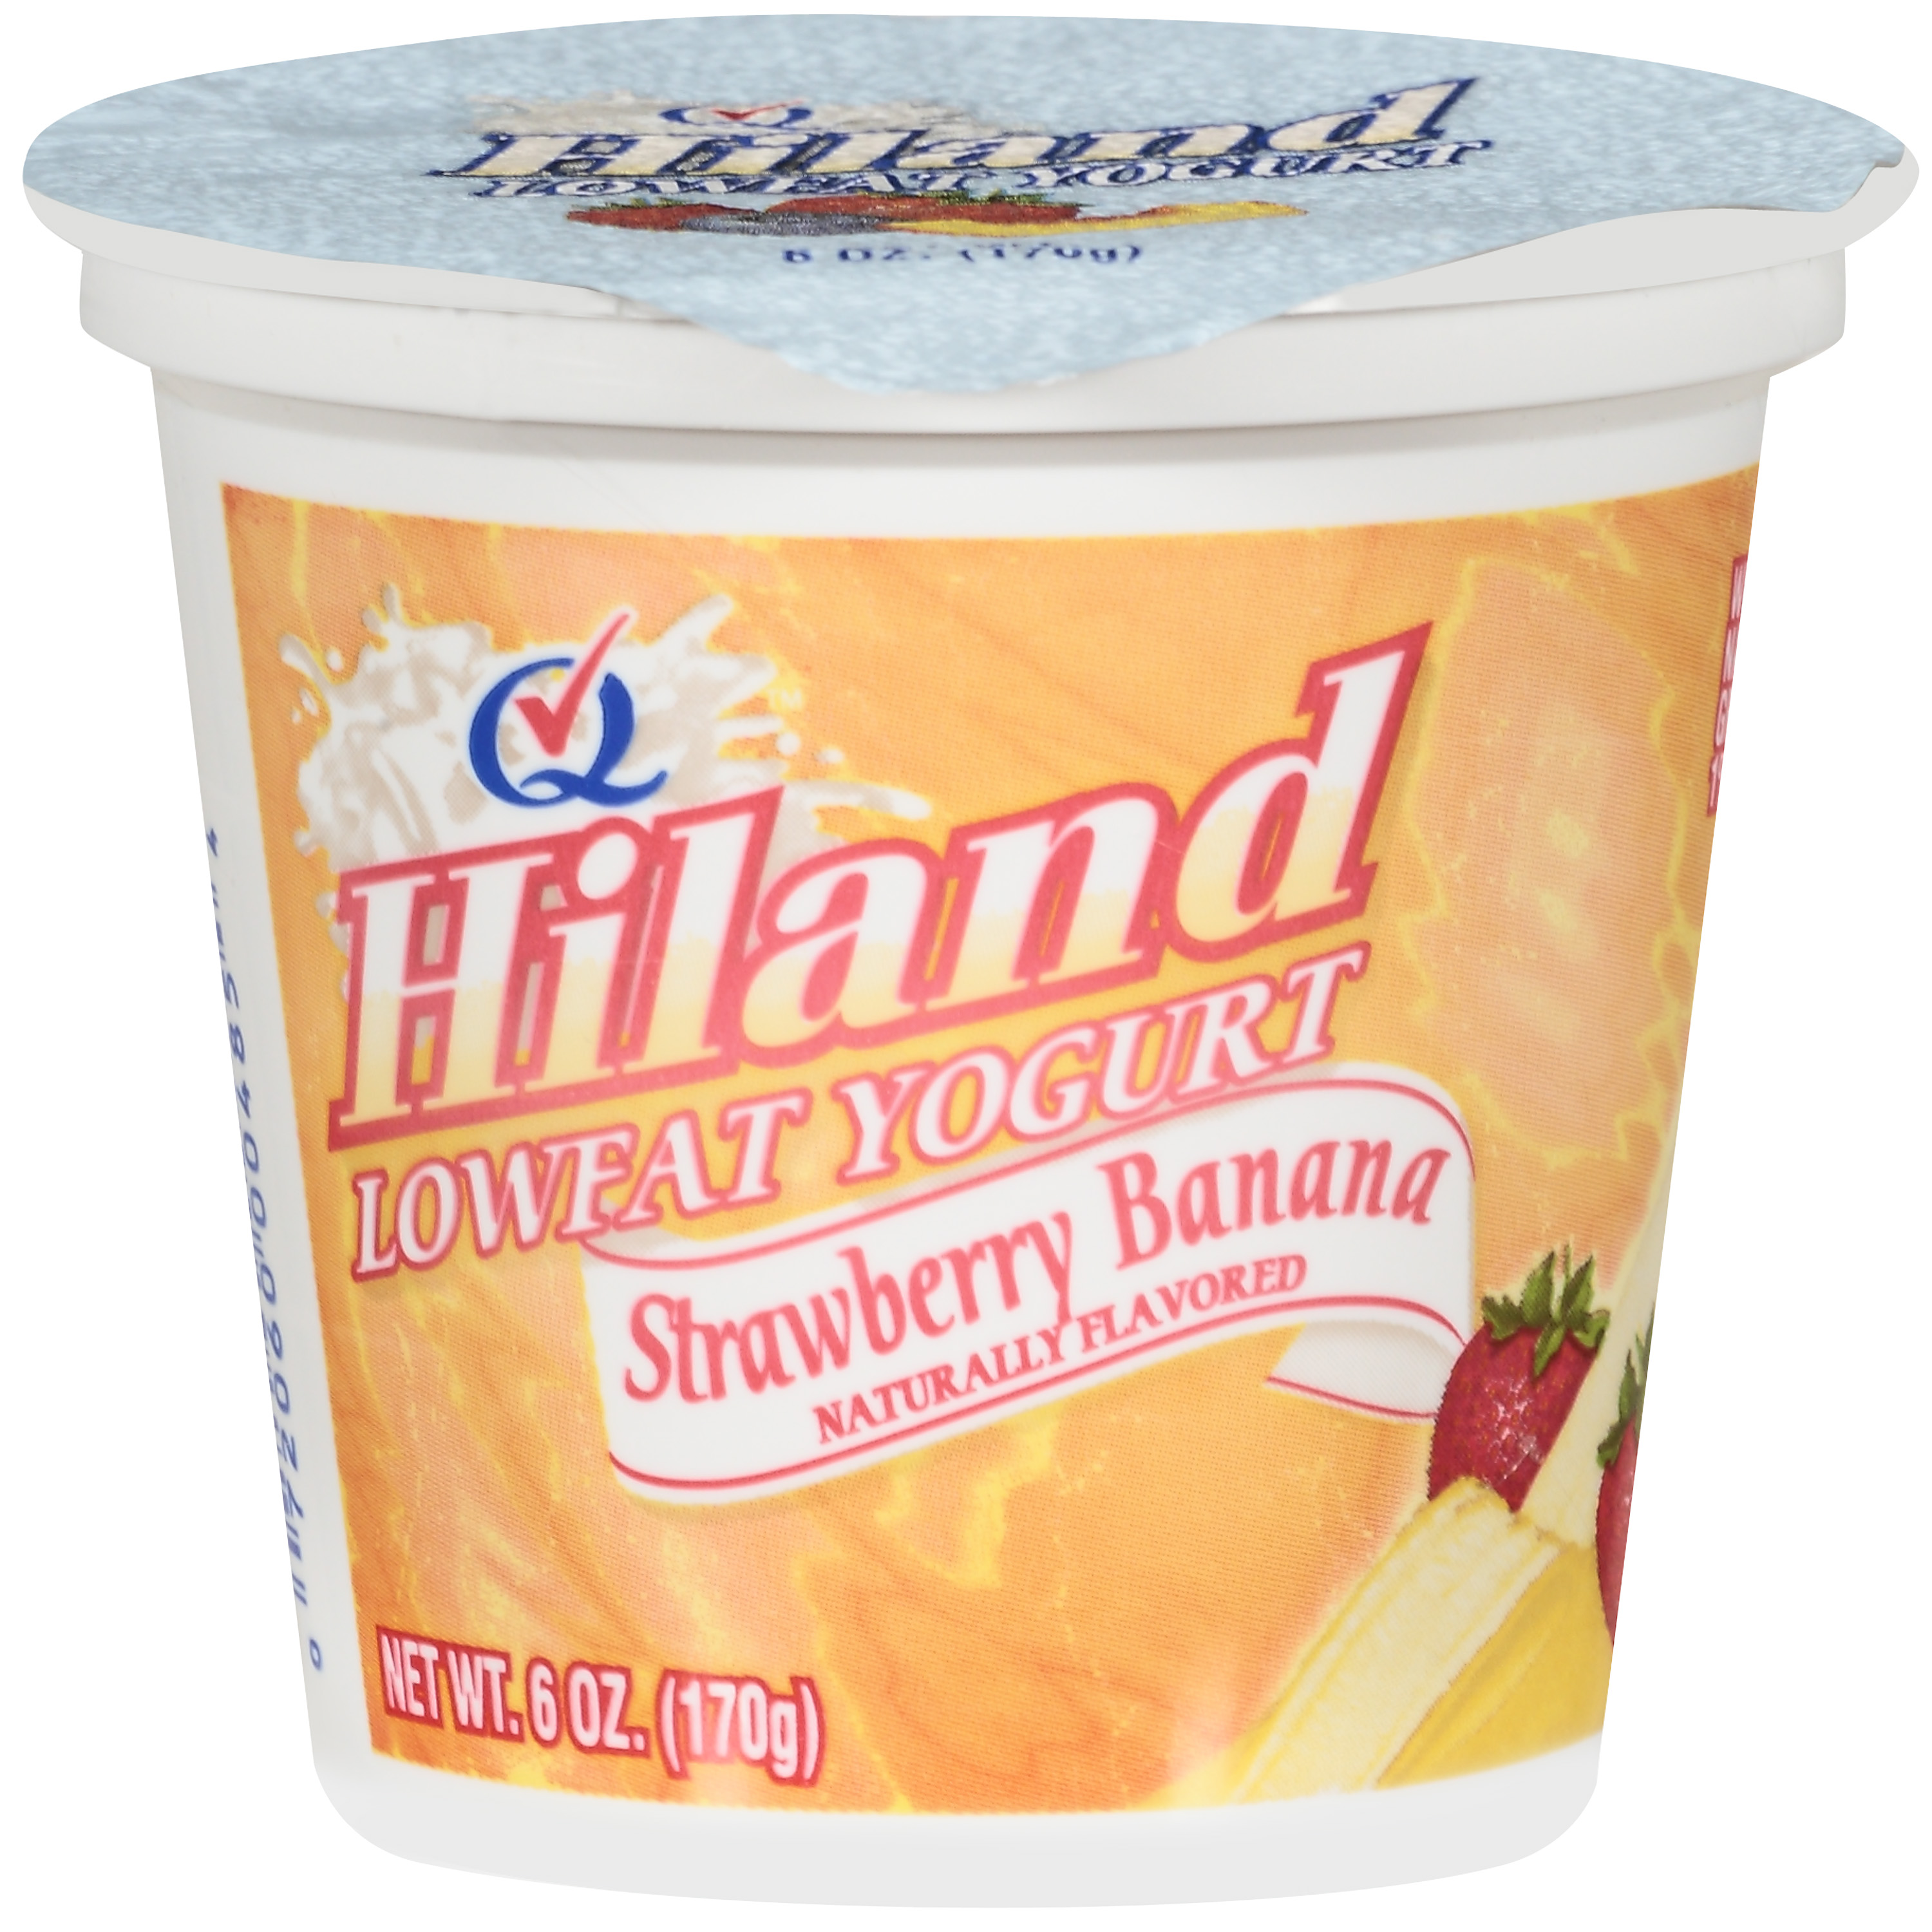 Hiland Lowfat Strawberry Banana Yogurt, 6 oz